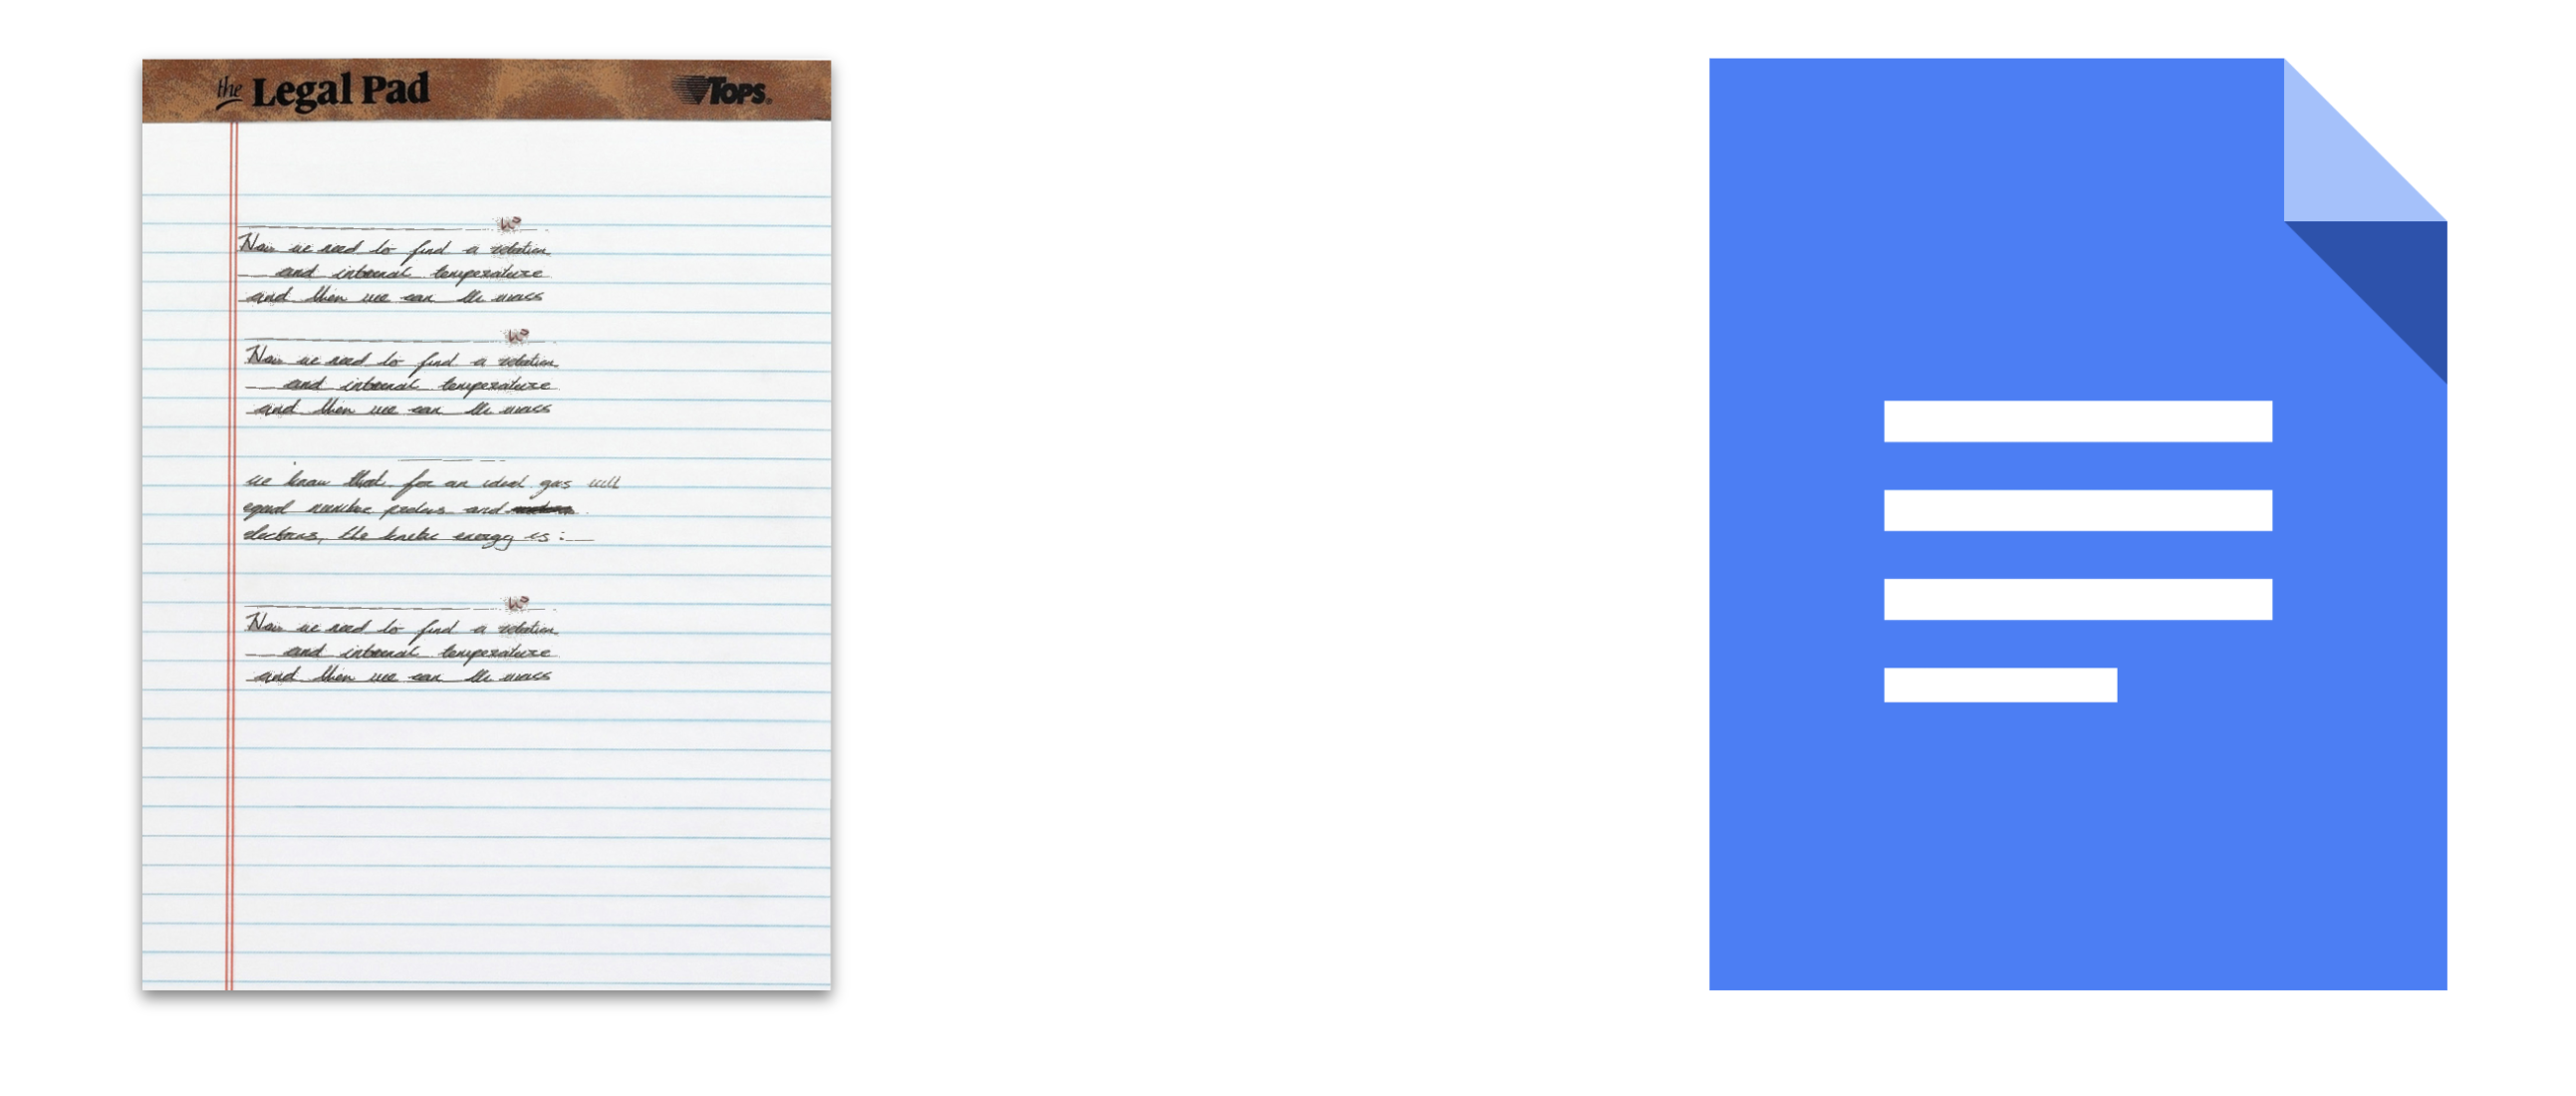 """Two icons depicting a note or document. The left icon is visually skeuomorphic, trying to look like a physical notepad. The right icon uses """"flat"""" design and does not attempt to mimic the look of paper or binding."""